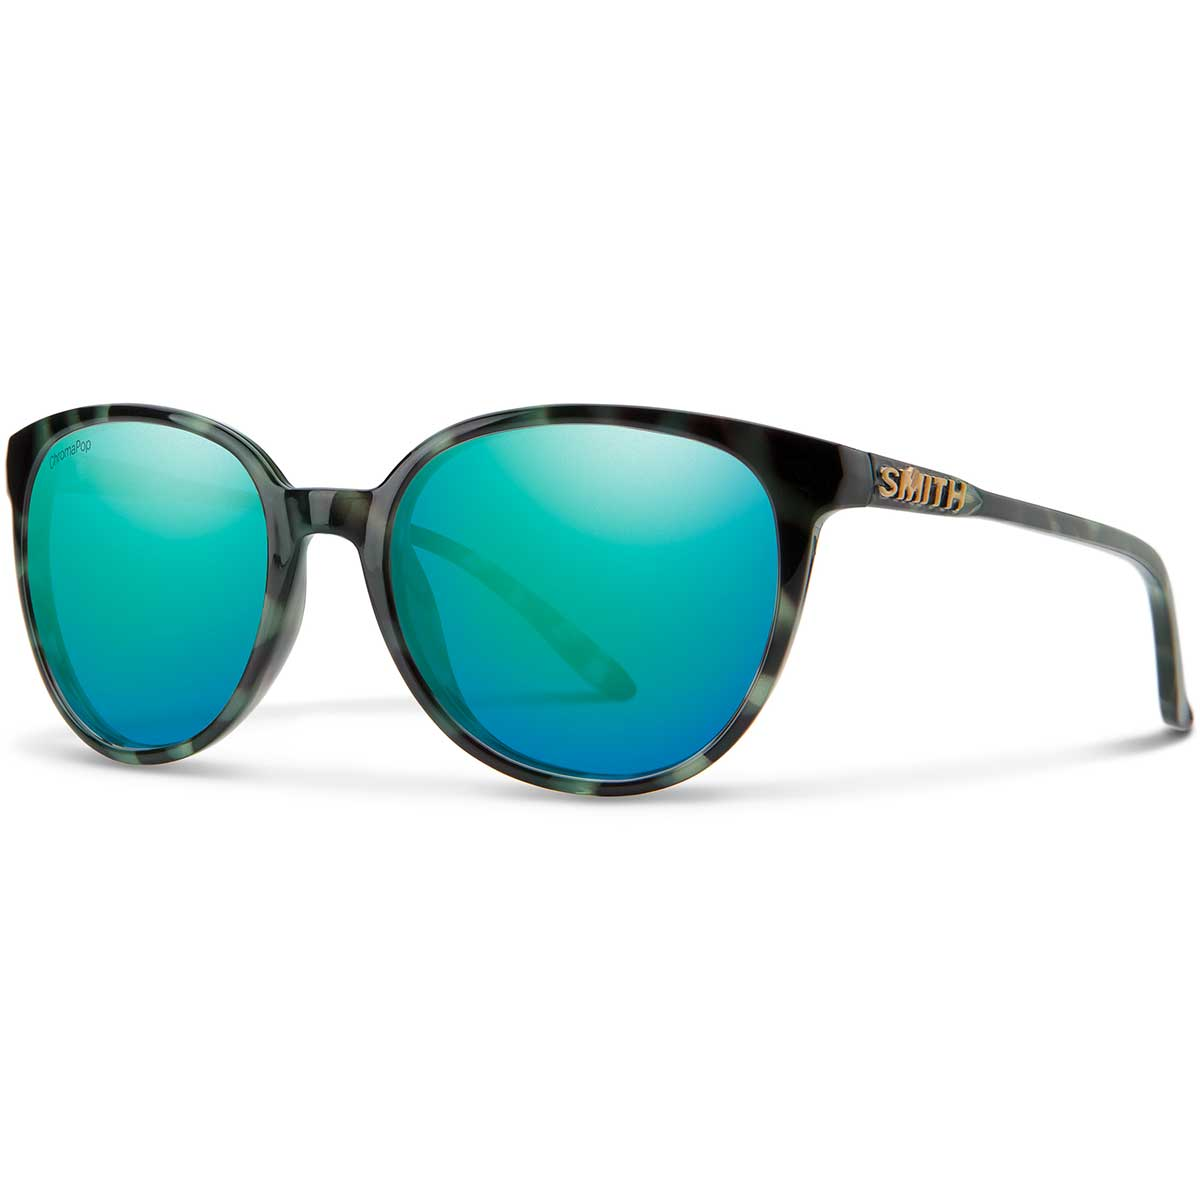 Smith Cheetah Sunglasses Chromapop in Camo Tortoise with Opal Mirror main view